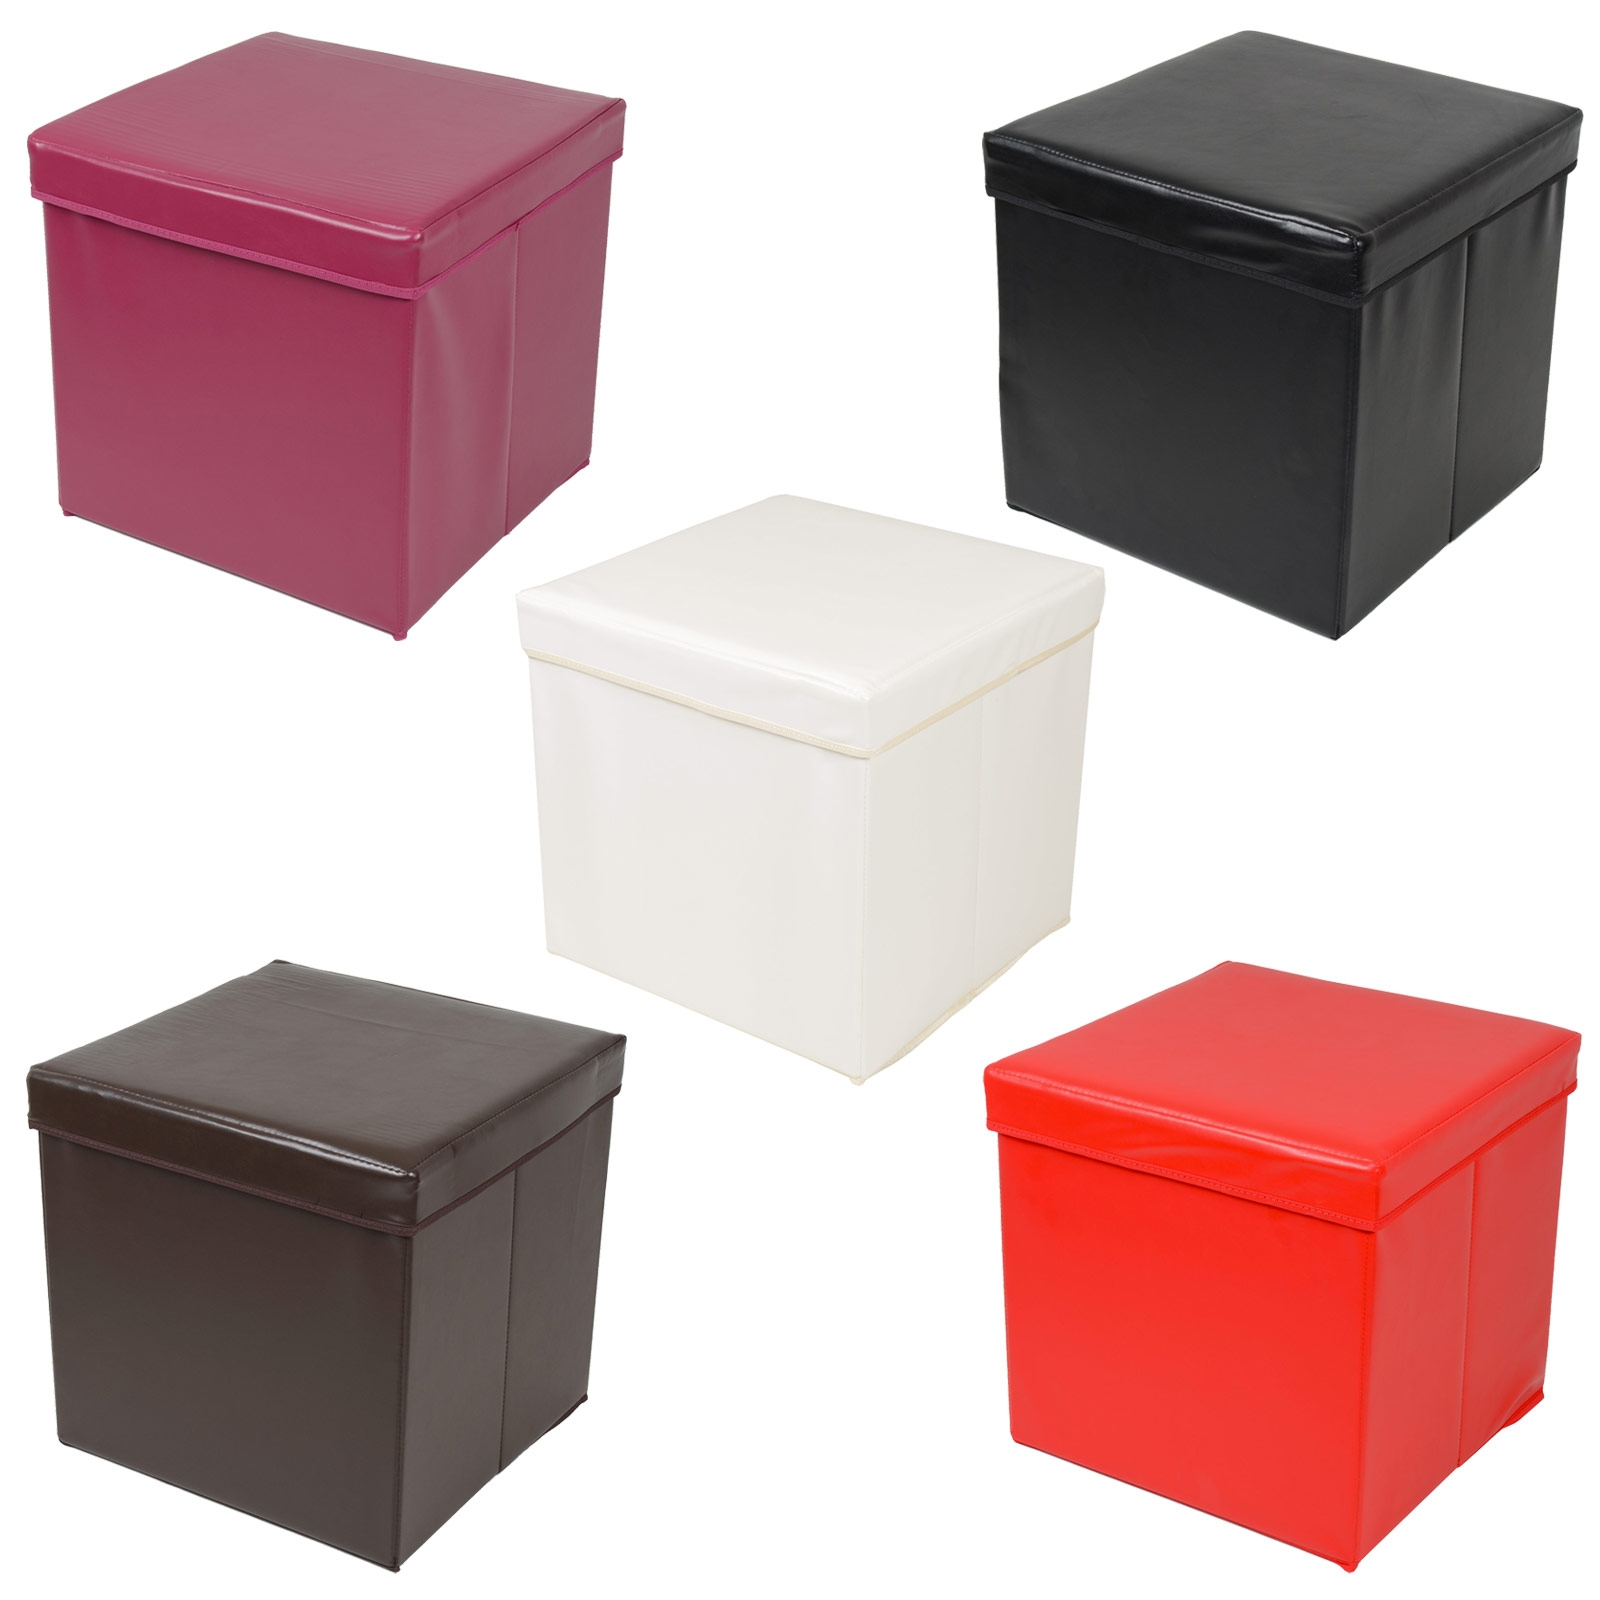 Ottoman Large Faux Leather Folding Storage Pouffe Toy Box Foot Pertaining To Pouffes And Footstools For Sale (Image 12 of 15)